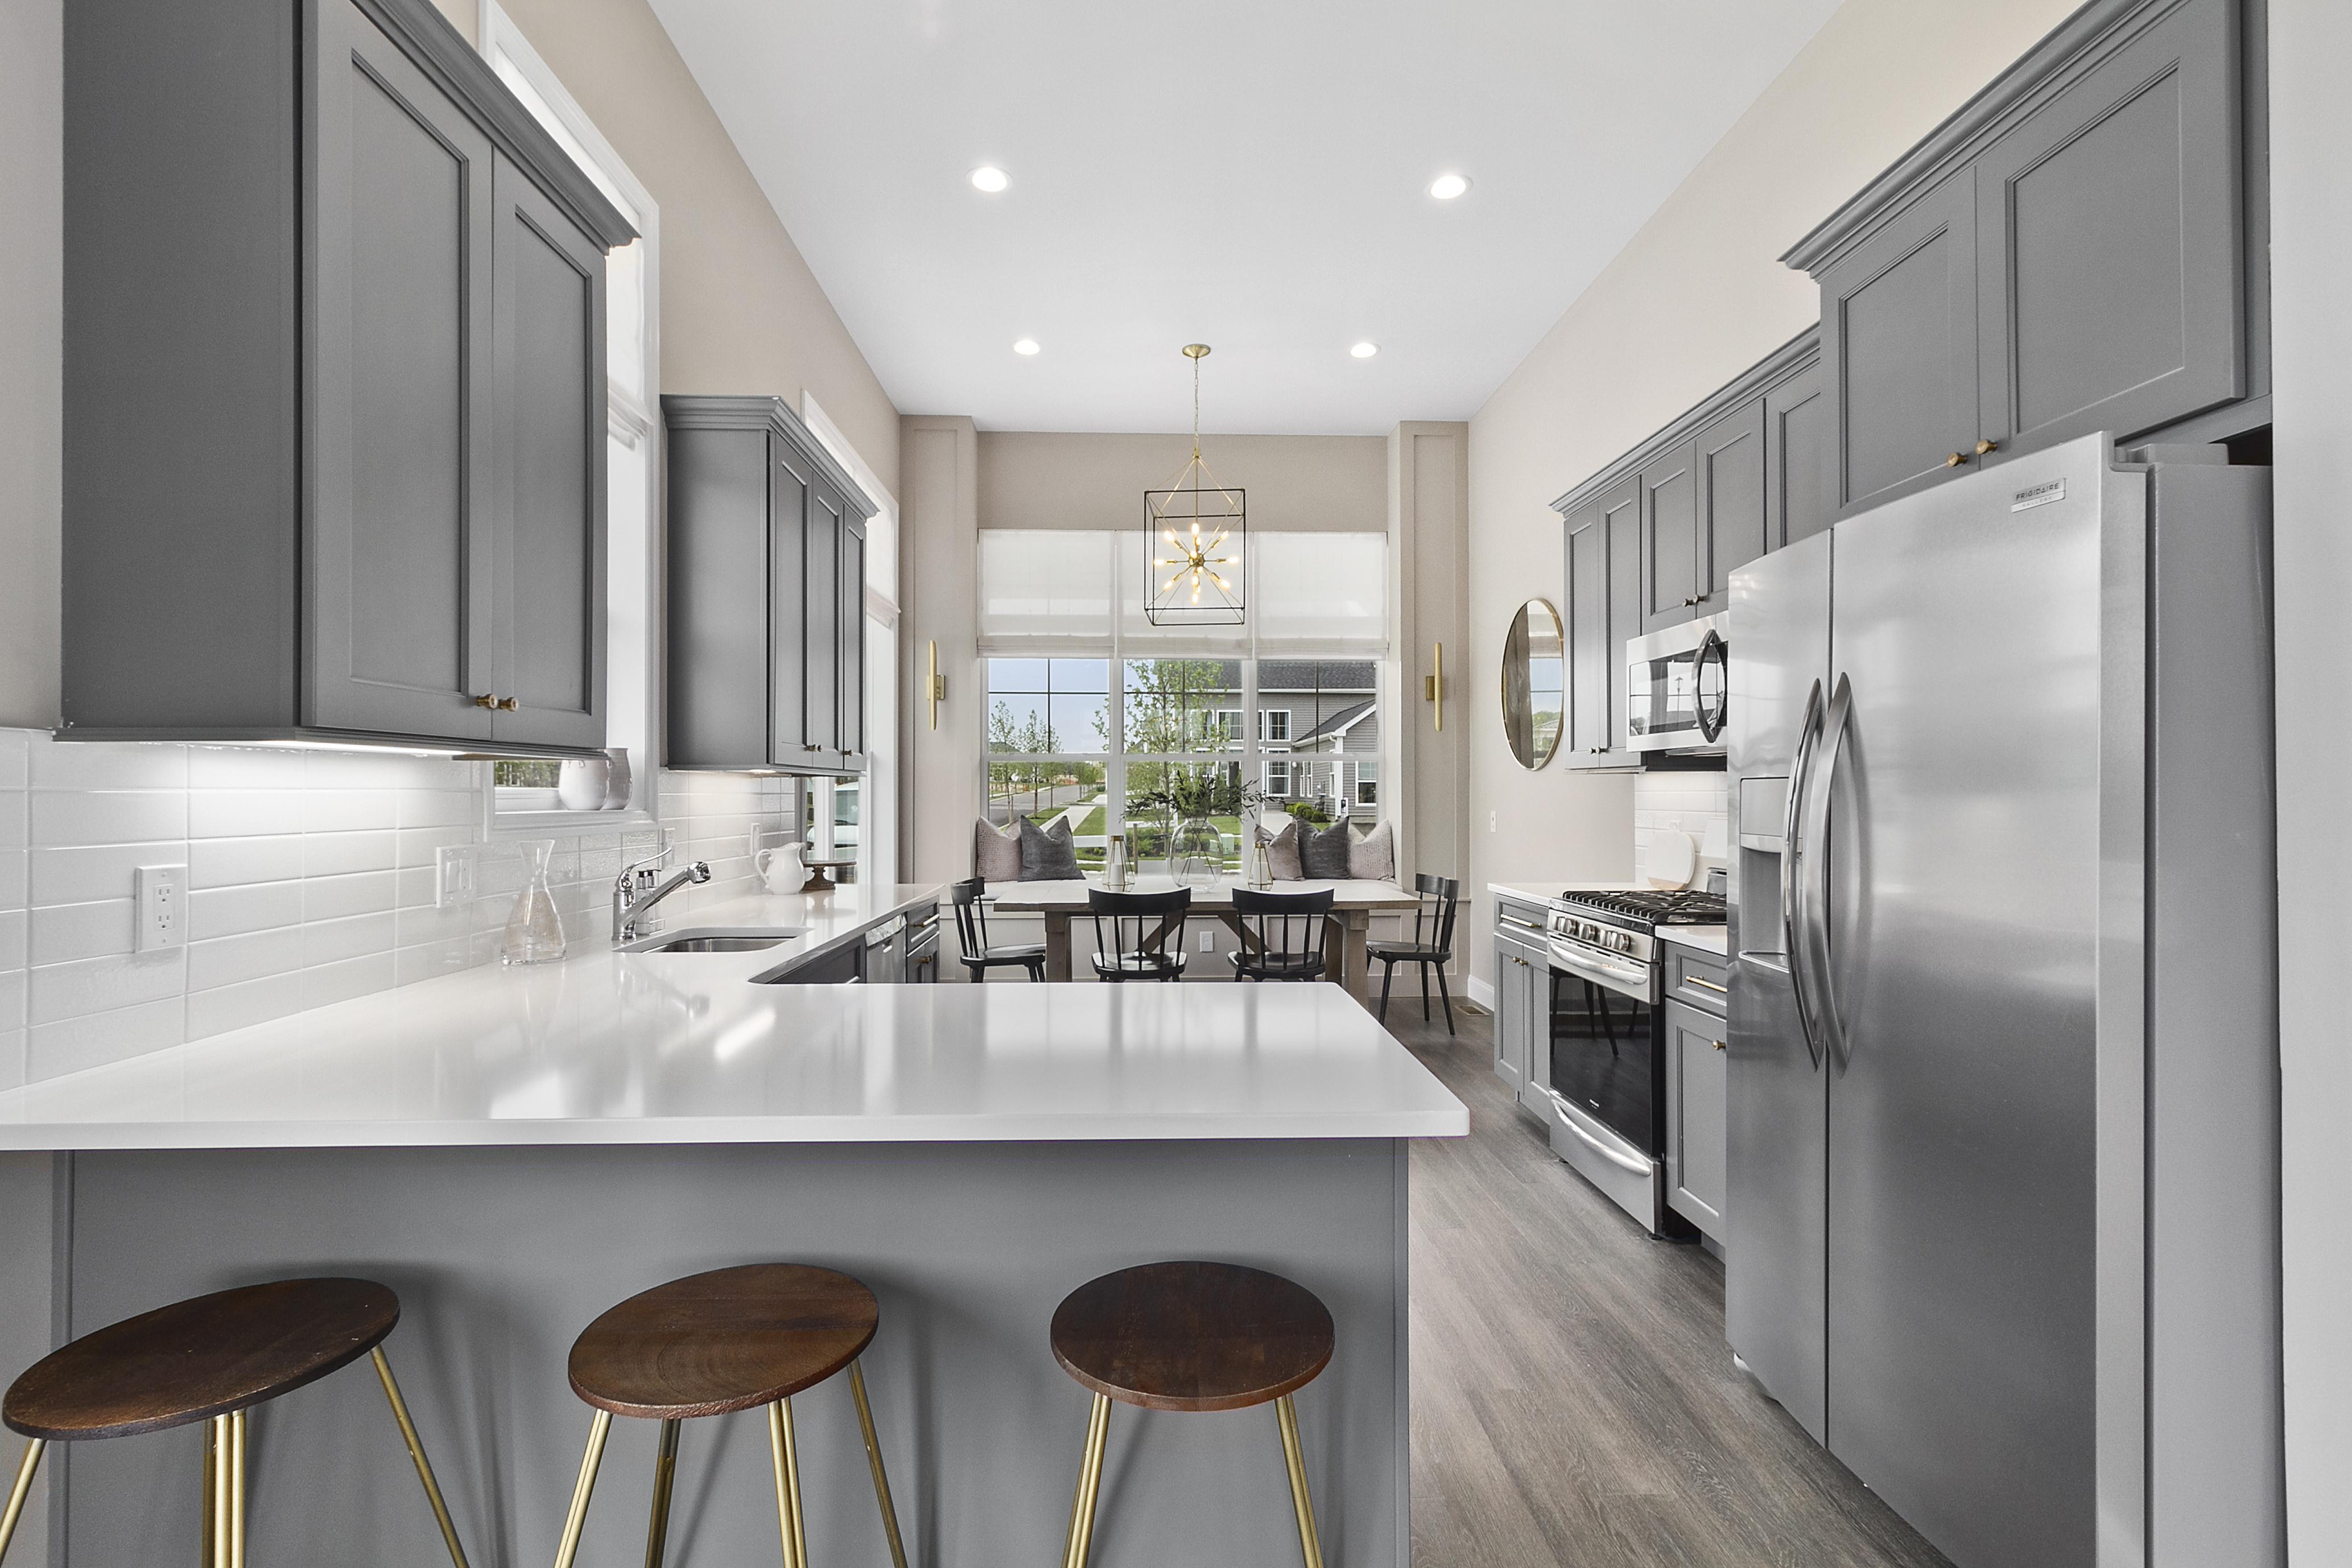 Kitchen featured in The Essex By Beechwood Homes in Nassau-Suffolk, NY